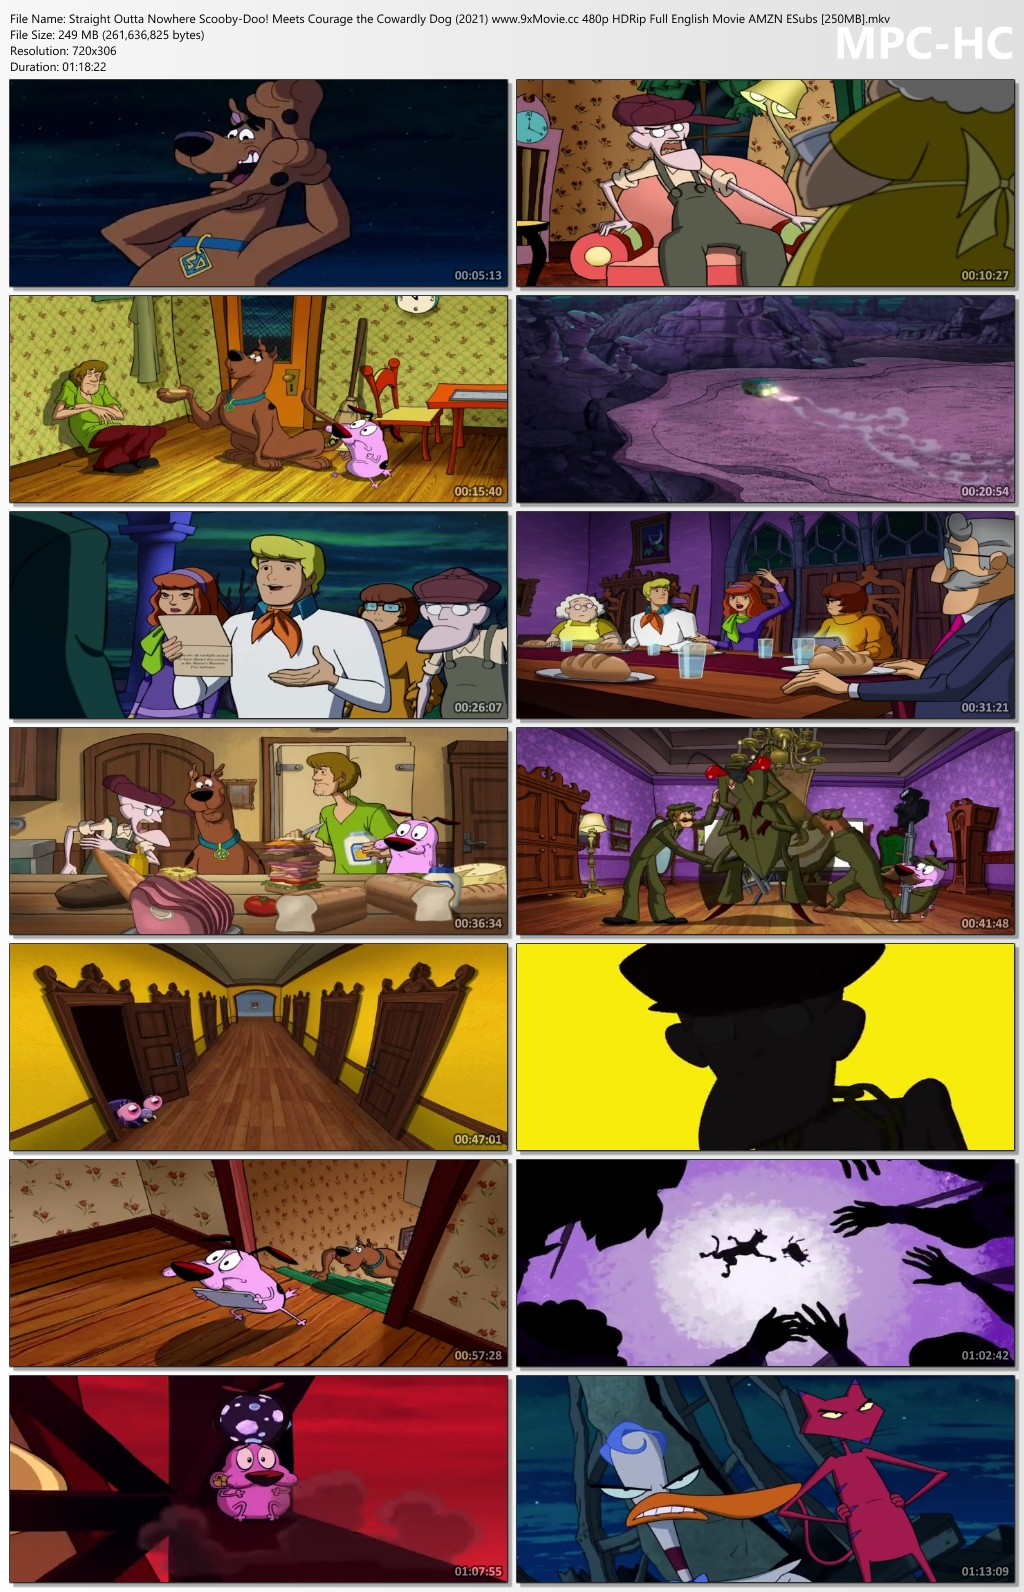 Straight-Outta-Nowhere-Scooby-Doo-Meets-Courage-the-Cowardly-Dog-2021-www-9x-Movie-cc-480p-HDRip-Ful